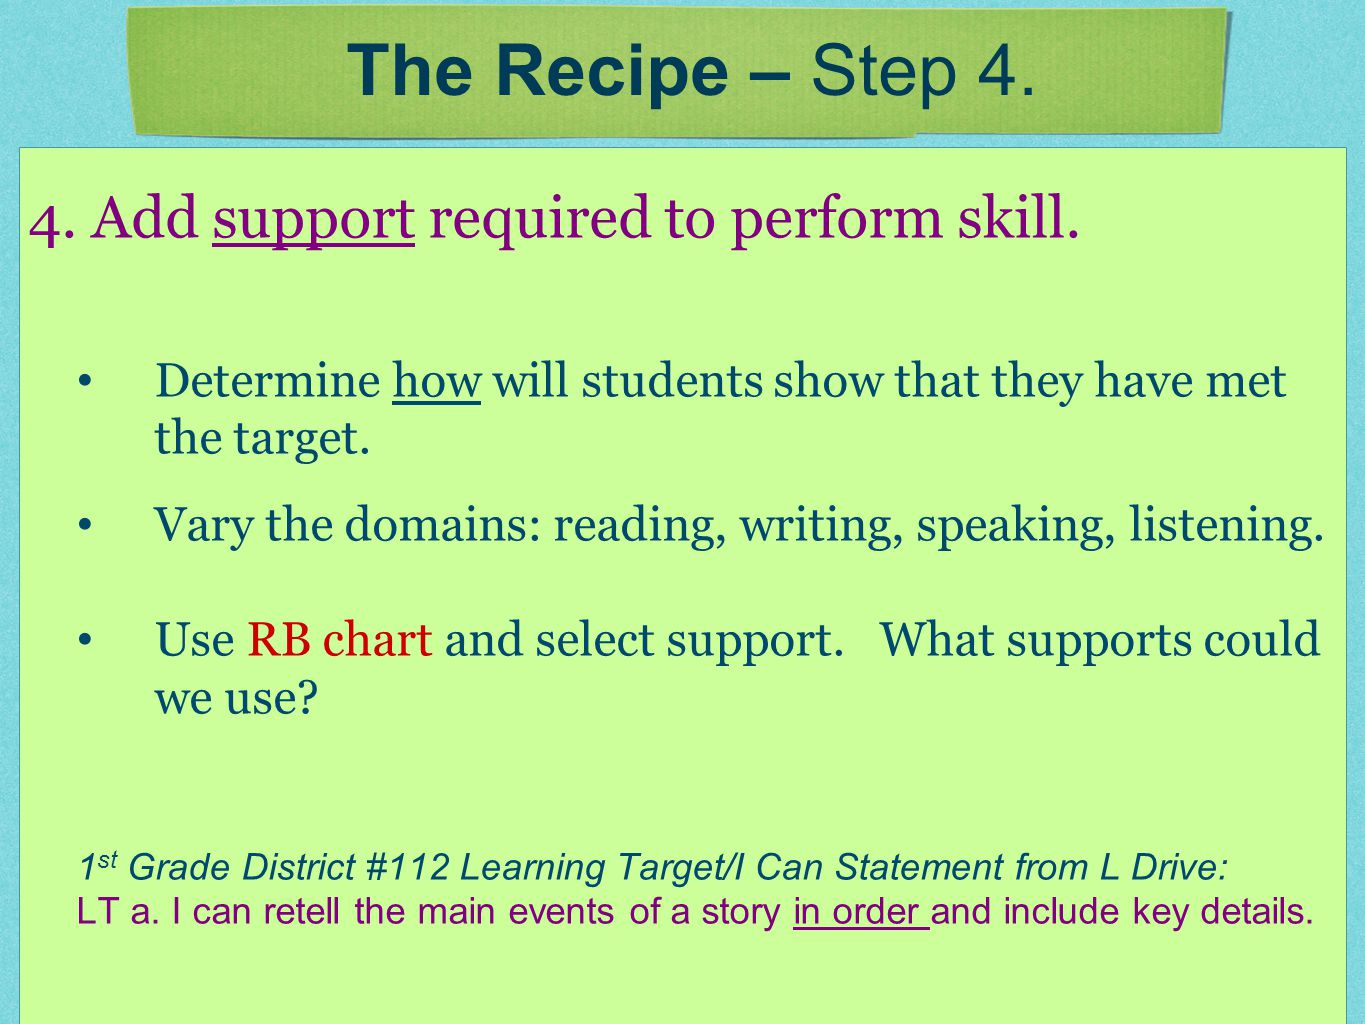 4. Add support required to perform skill.